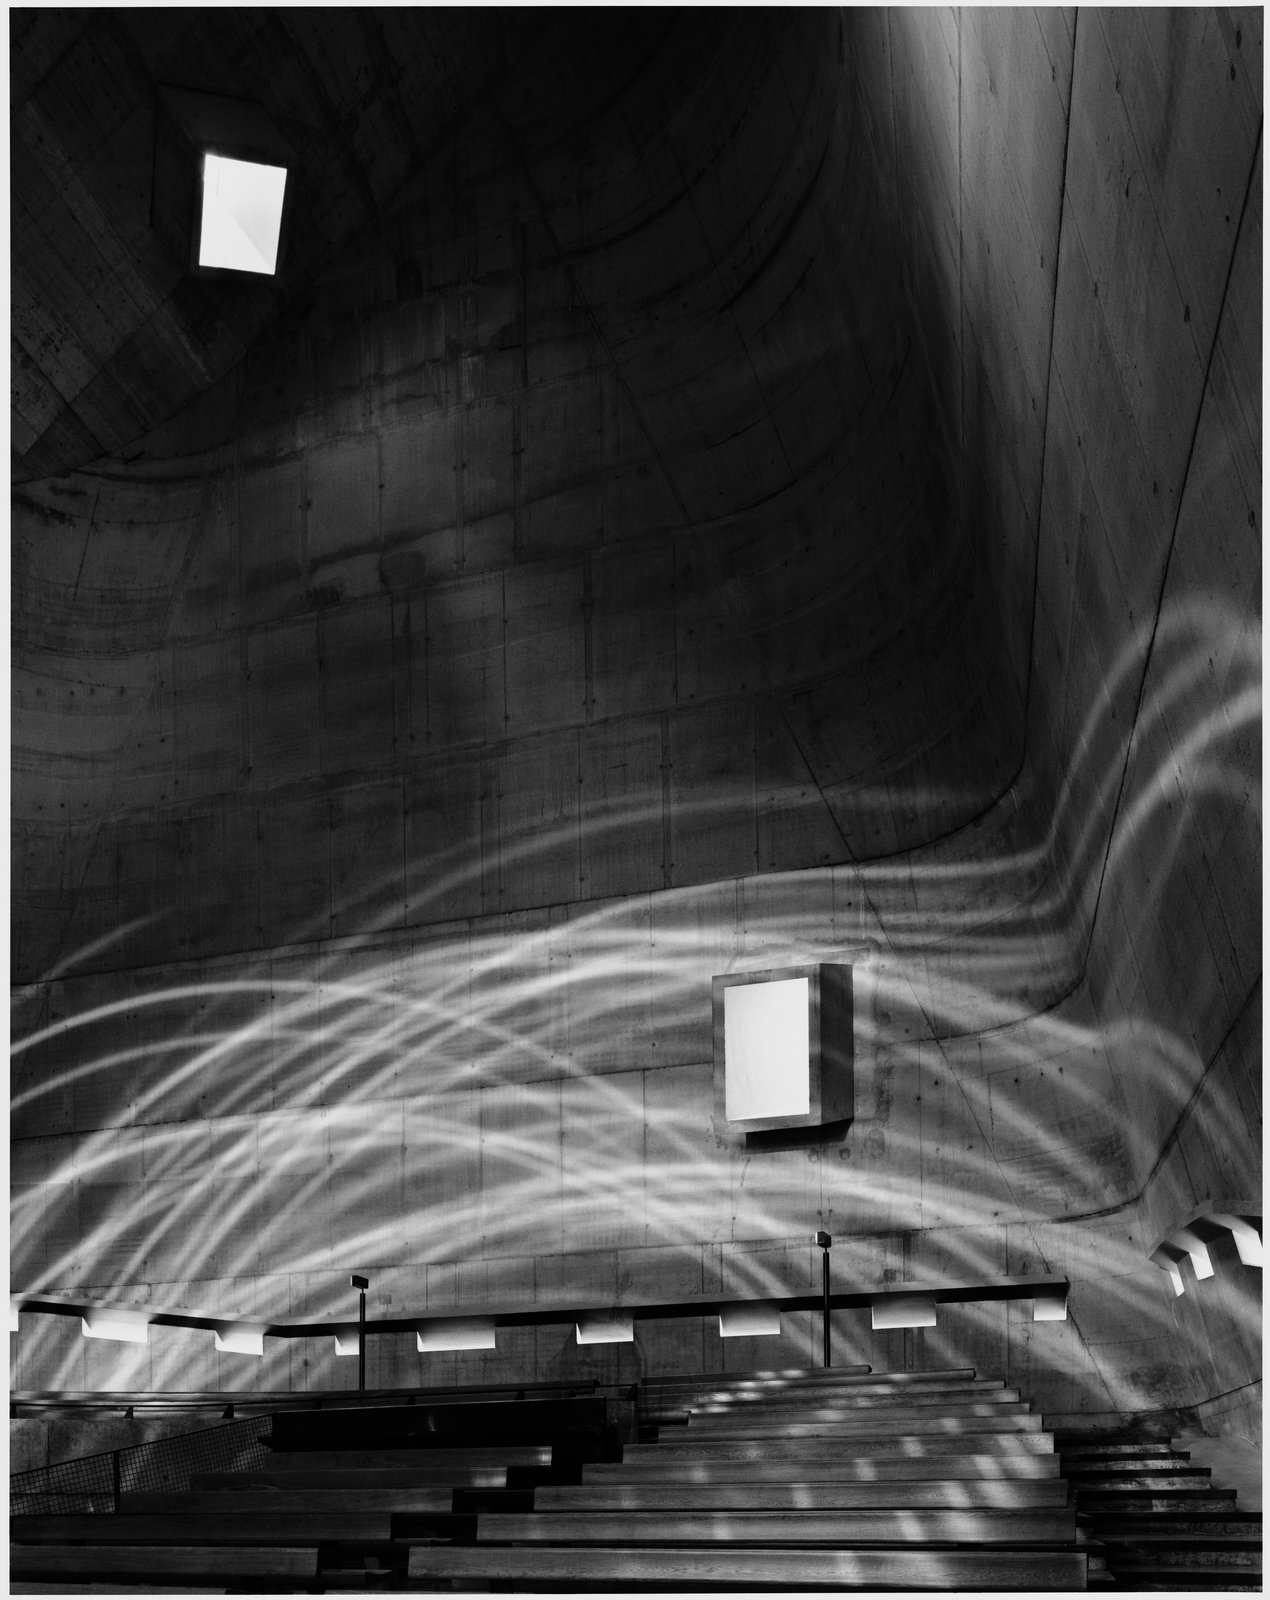 Firminy C, Le Corbusier, 2007, silver gelatin print.  Photo 2 of 8 in A New Los Angeles Exhibition Celebrates the Architectural Photography of Hélène Binet